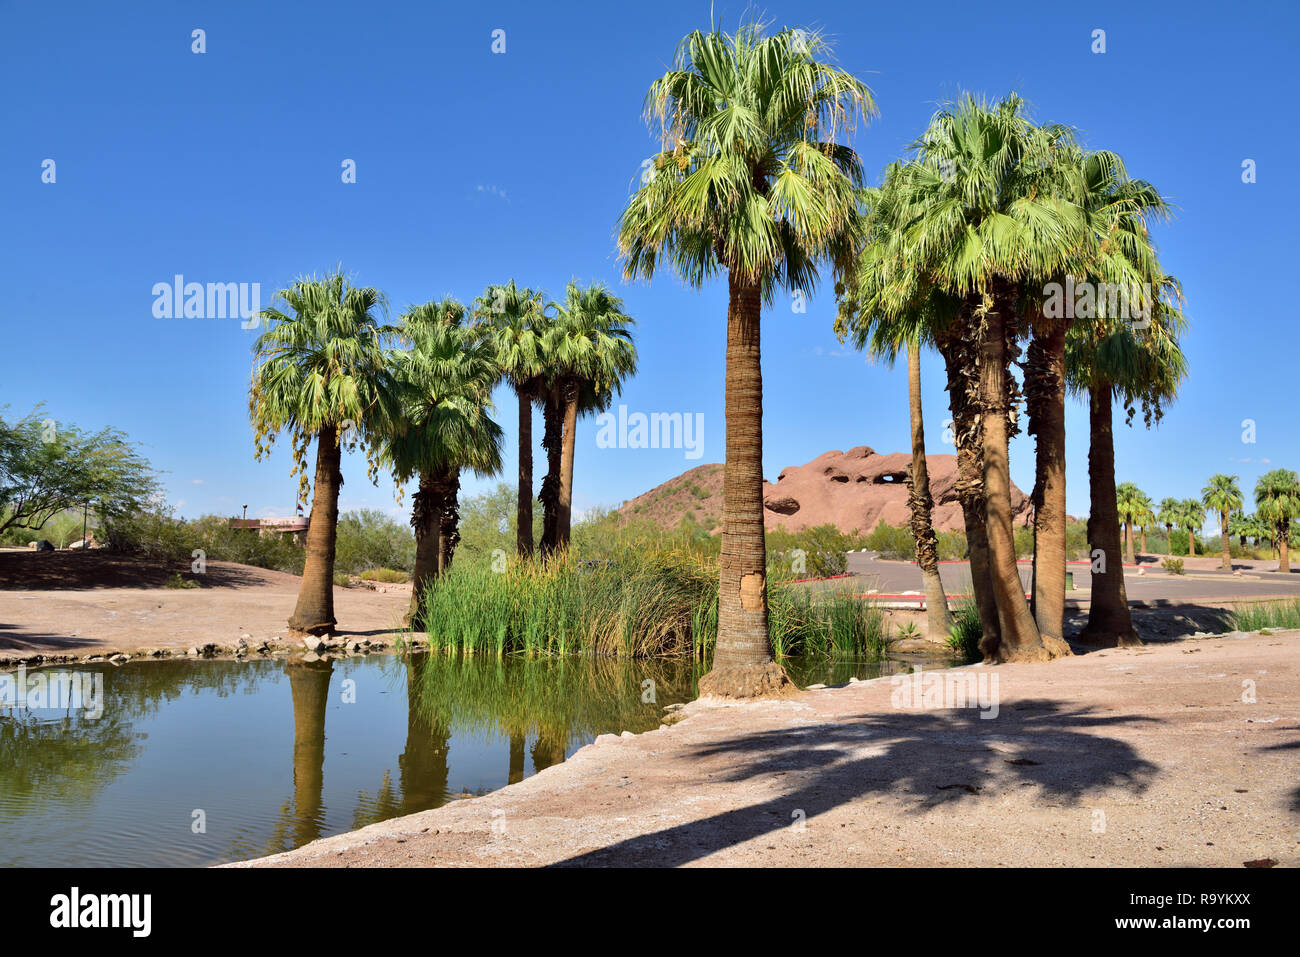 Papago municipal park in outskirts of  Phoenix and Tempe, AZ, with desert scenery plus small lake, palm trees,  USA - Stock Image